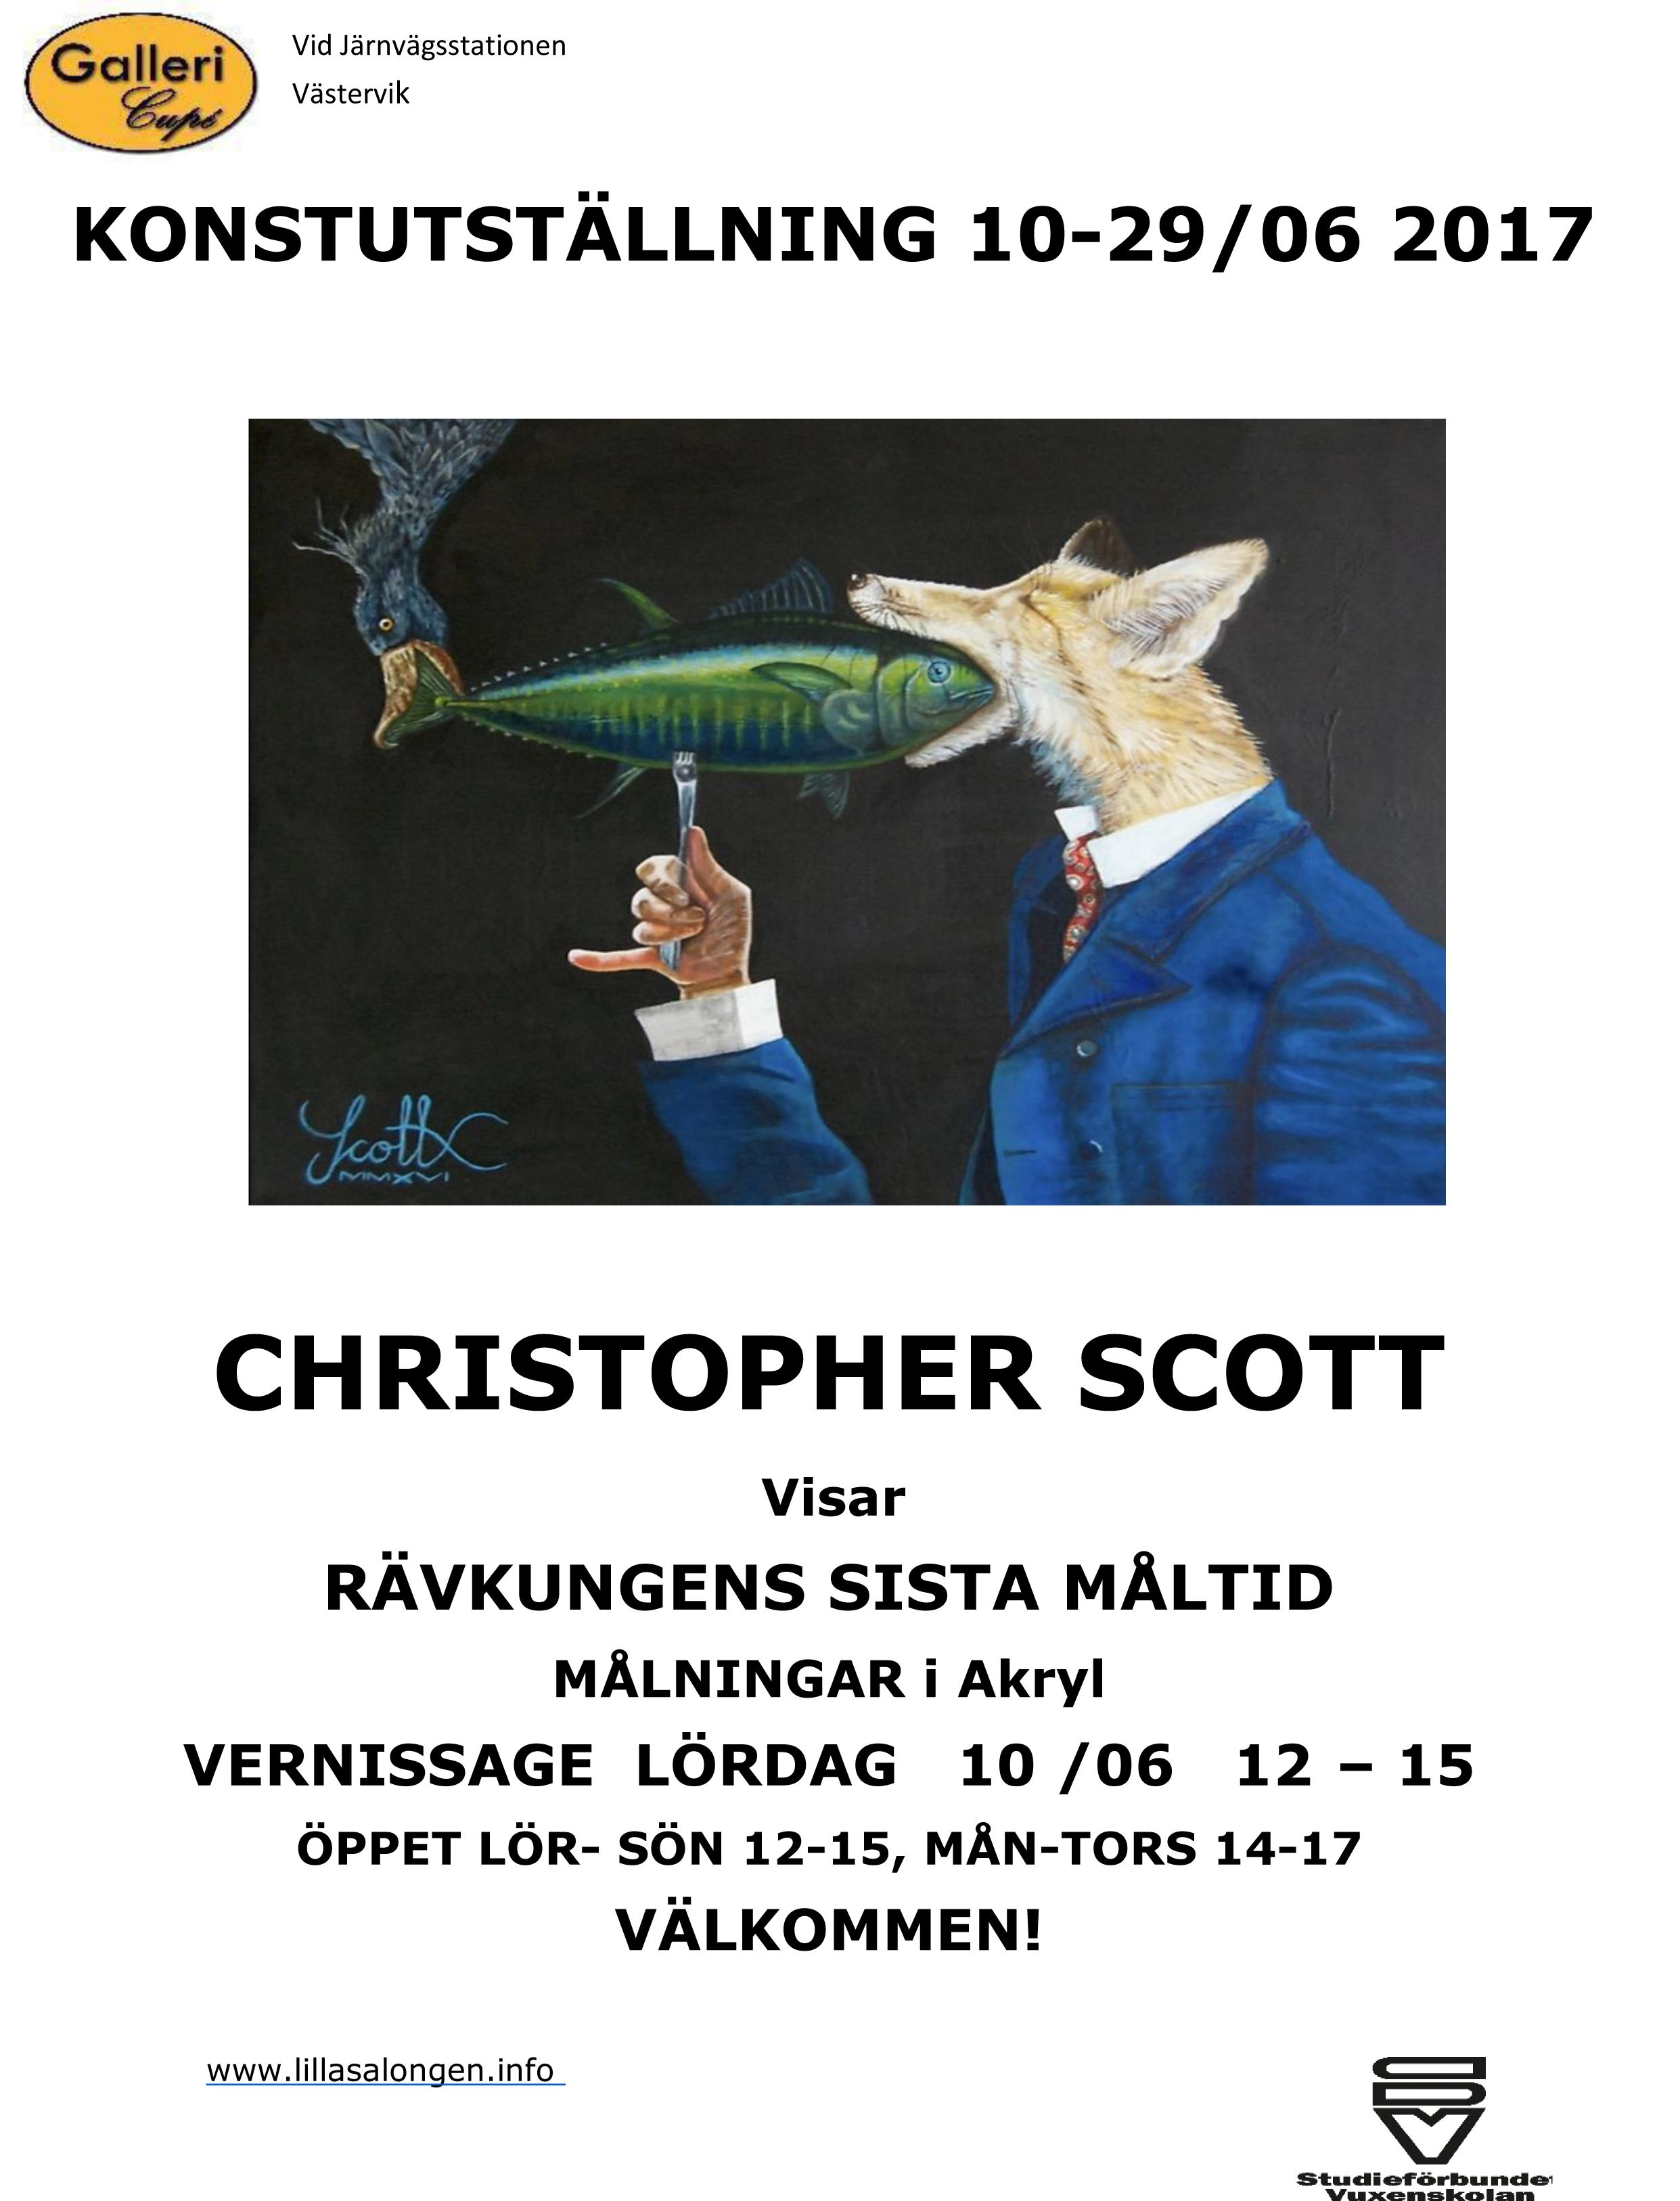 Art Exhibition at Galleri Cupé with Christopher Scott